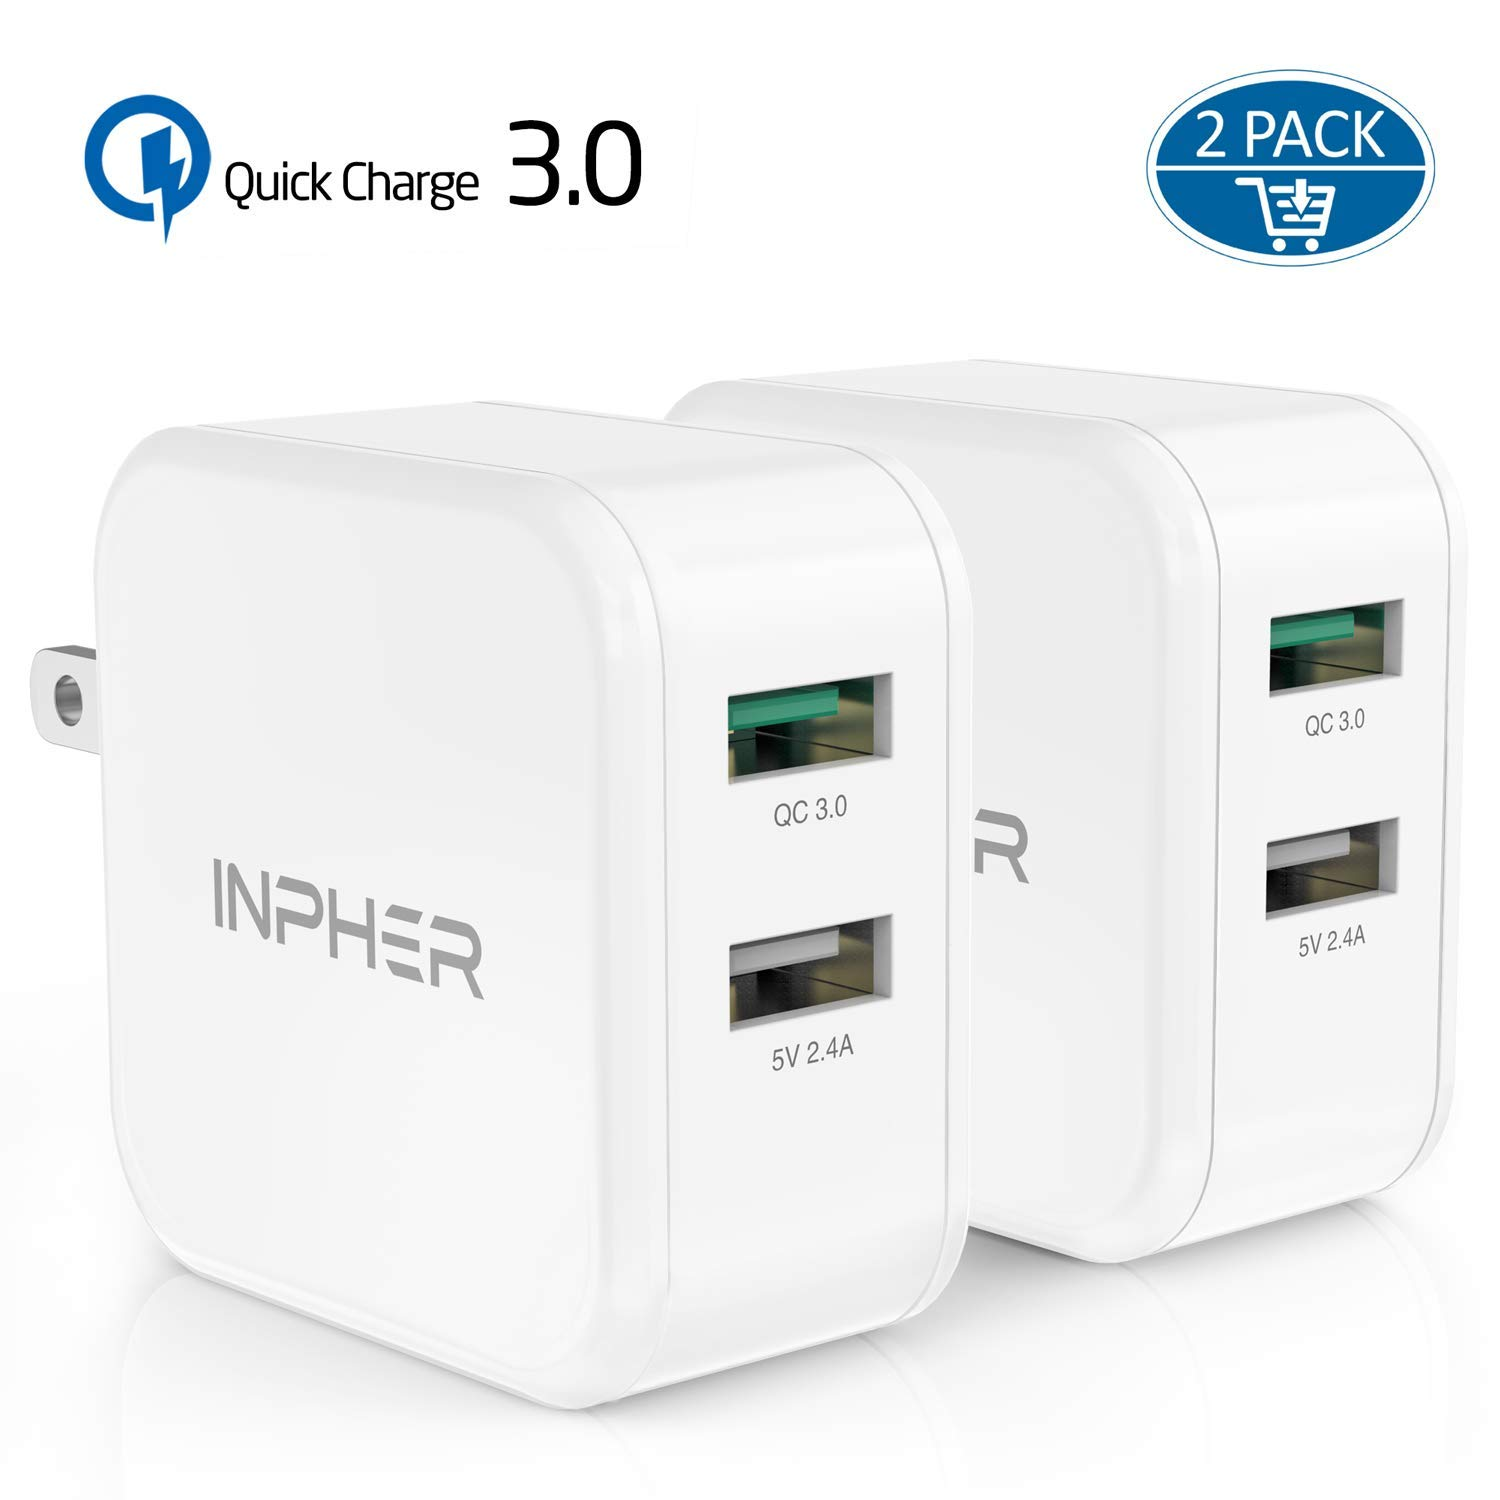 2 Quick Charge USB Wall Charger, Inpher 30W Fast Charger 3.0 + 2.4A Dual Ports Power Adapter with SmartID Foldable Plug for Samsung Galaxy, iPhone, ...